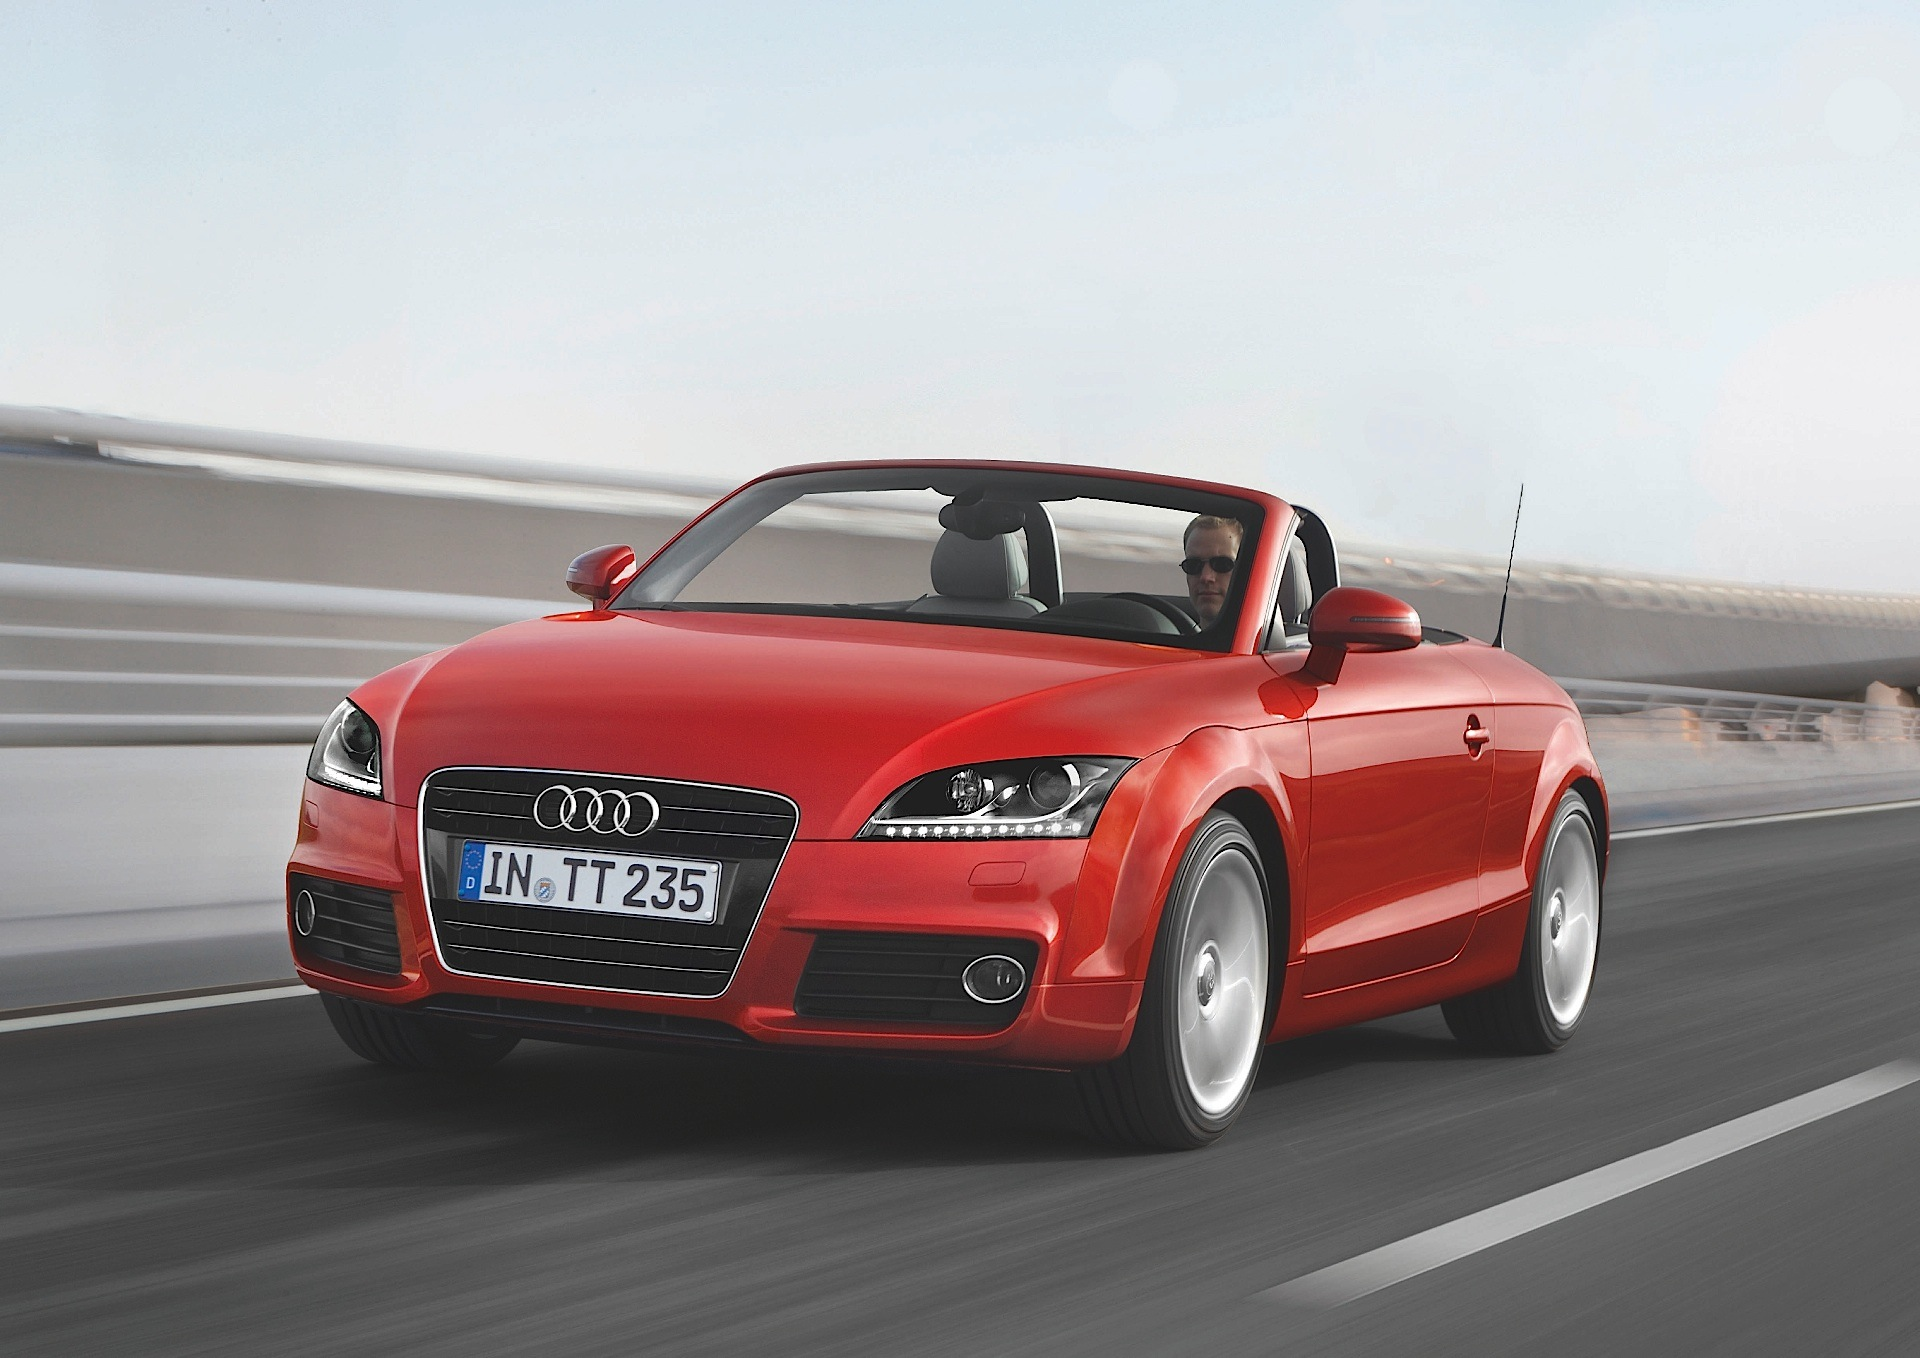 audi tt roadster specs 2007 2008 2009 2010 2011 2012 2013 2014 autoevolution. Black Bedroom Furniture Sets. Home Design Ideas